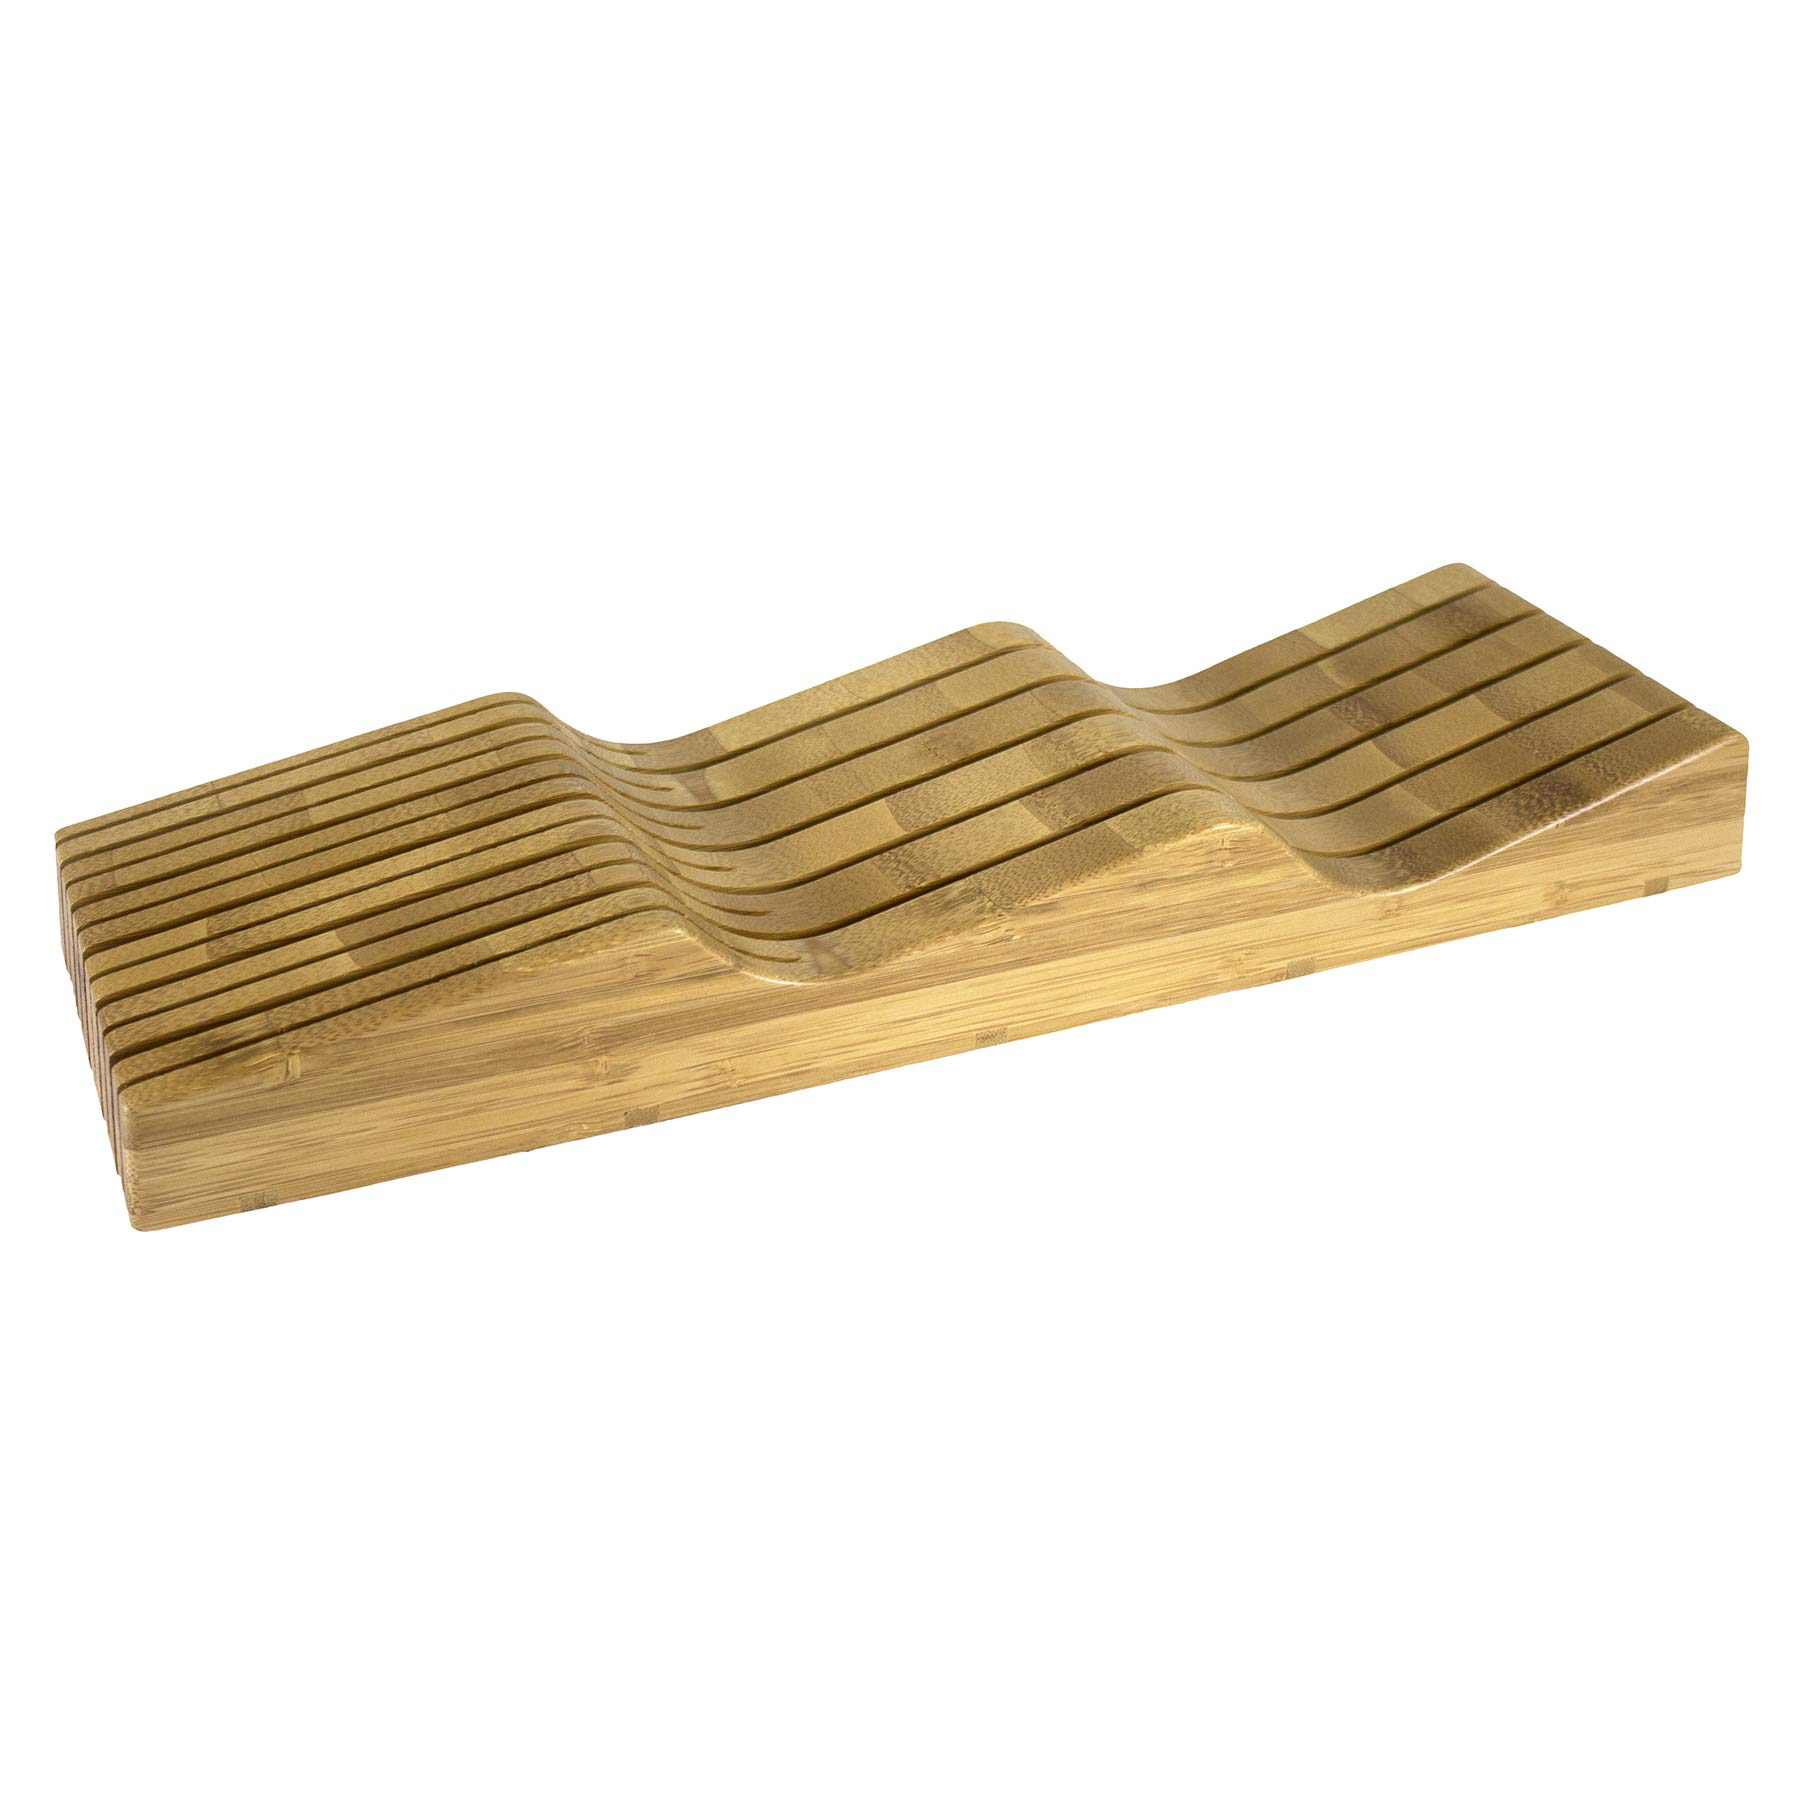 Totally Bamboo In Drawer Knife Block, 100% Organic Bamboo Knife Block, Holder, Storage Organizer; This Eco Friendly Knife Organizer Holds up to 15 Knives. Keep your counter tops clear and Knife Safety